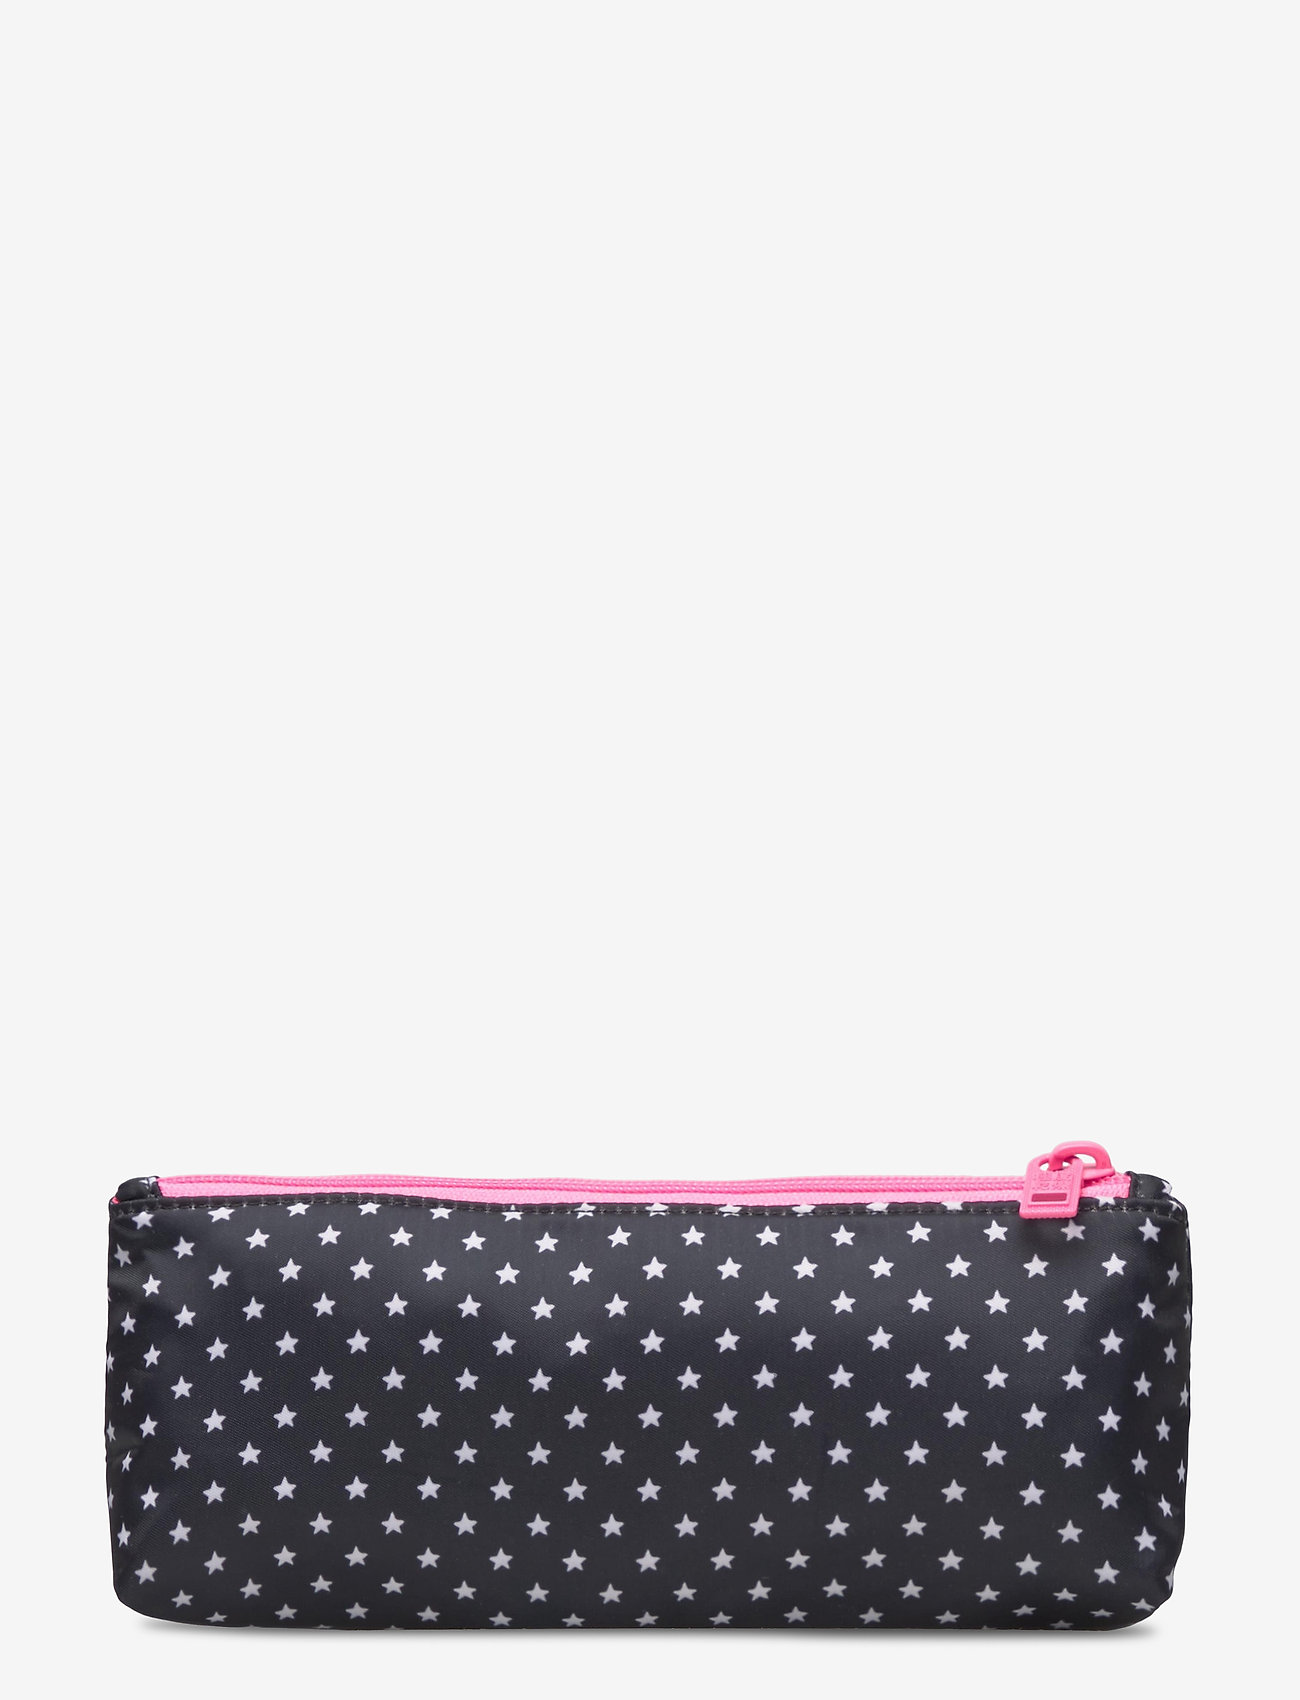 Superdry - SUPER PENCIL CASE - pencil cases - mono stars - 1